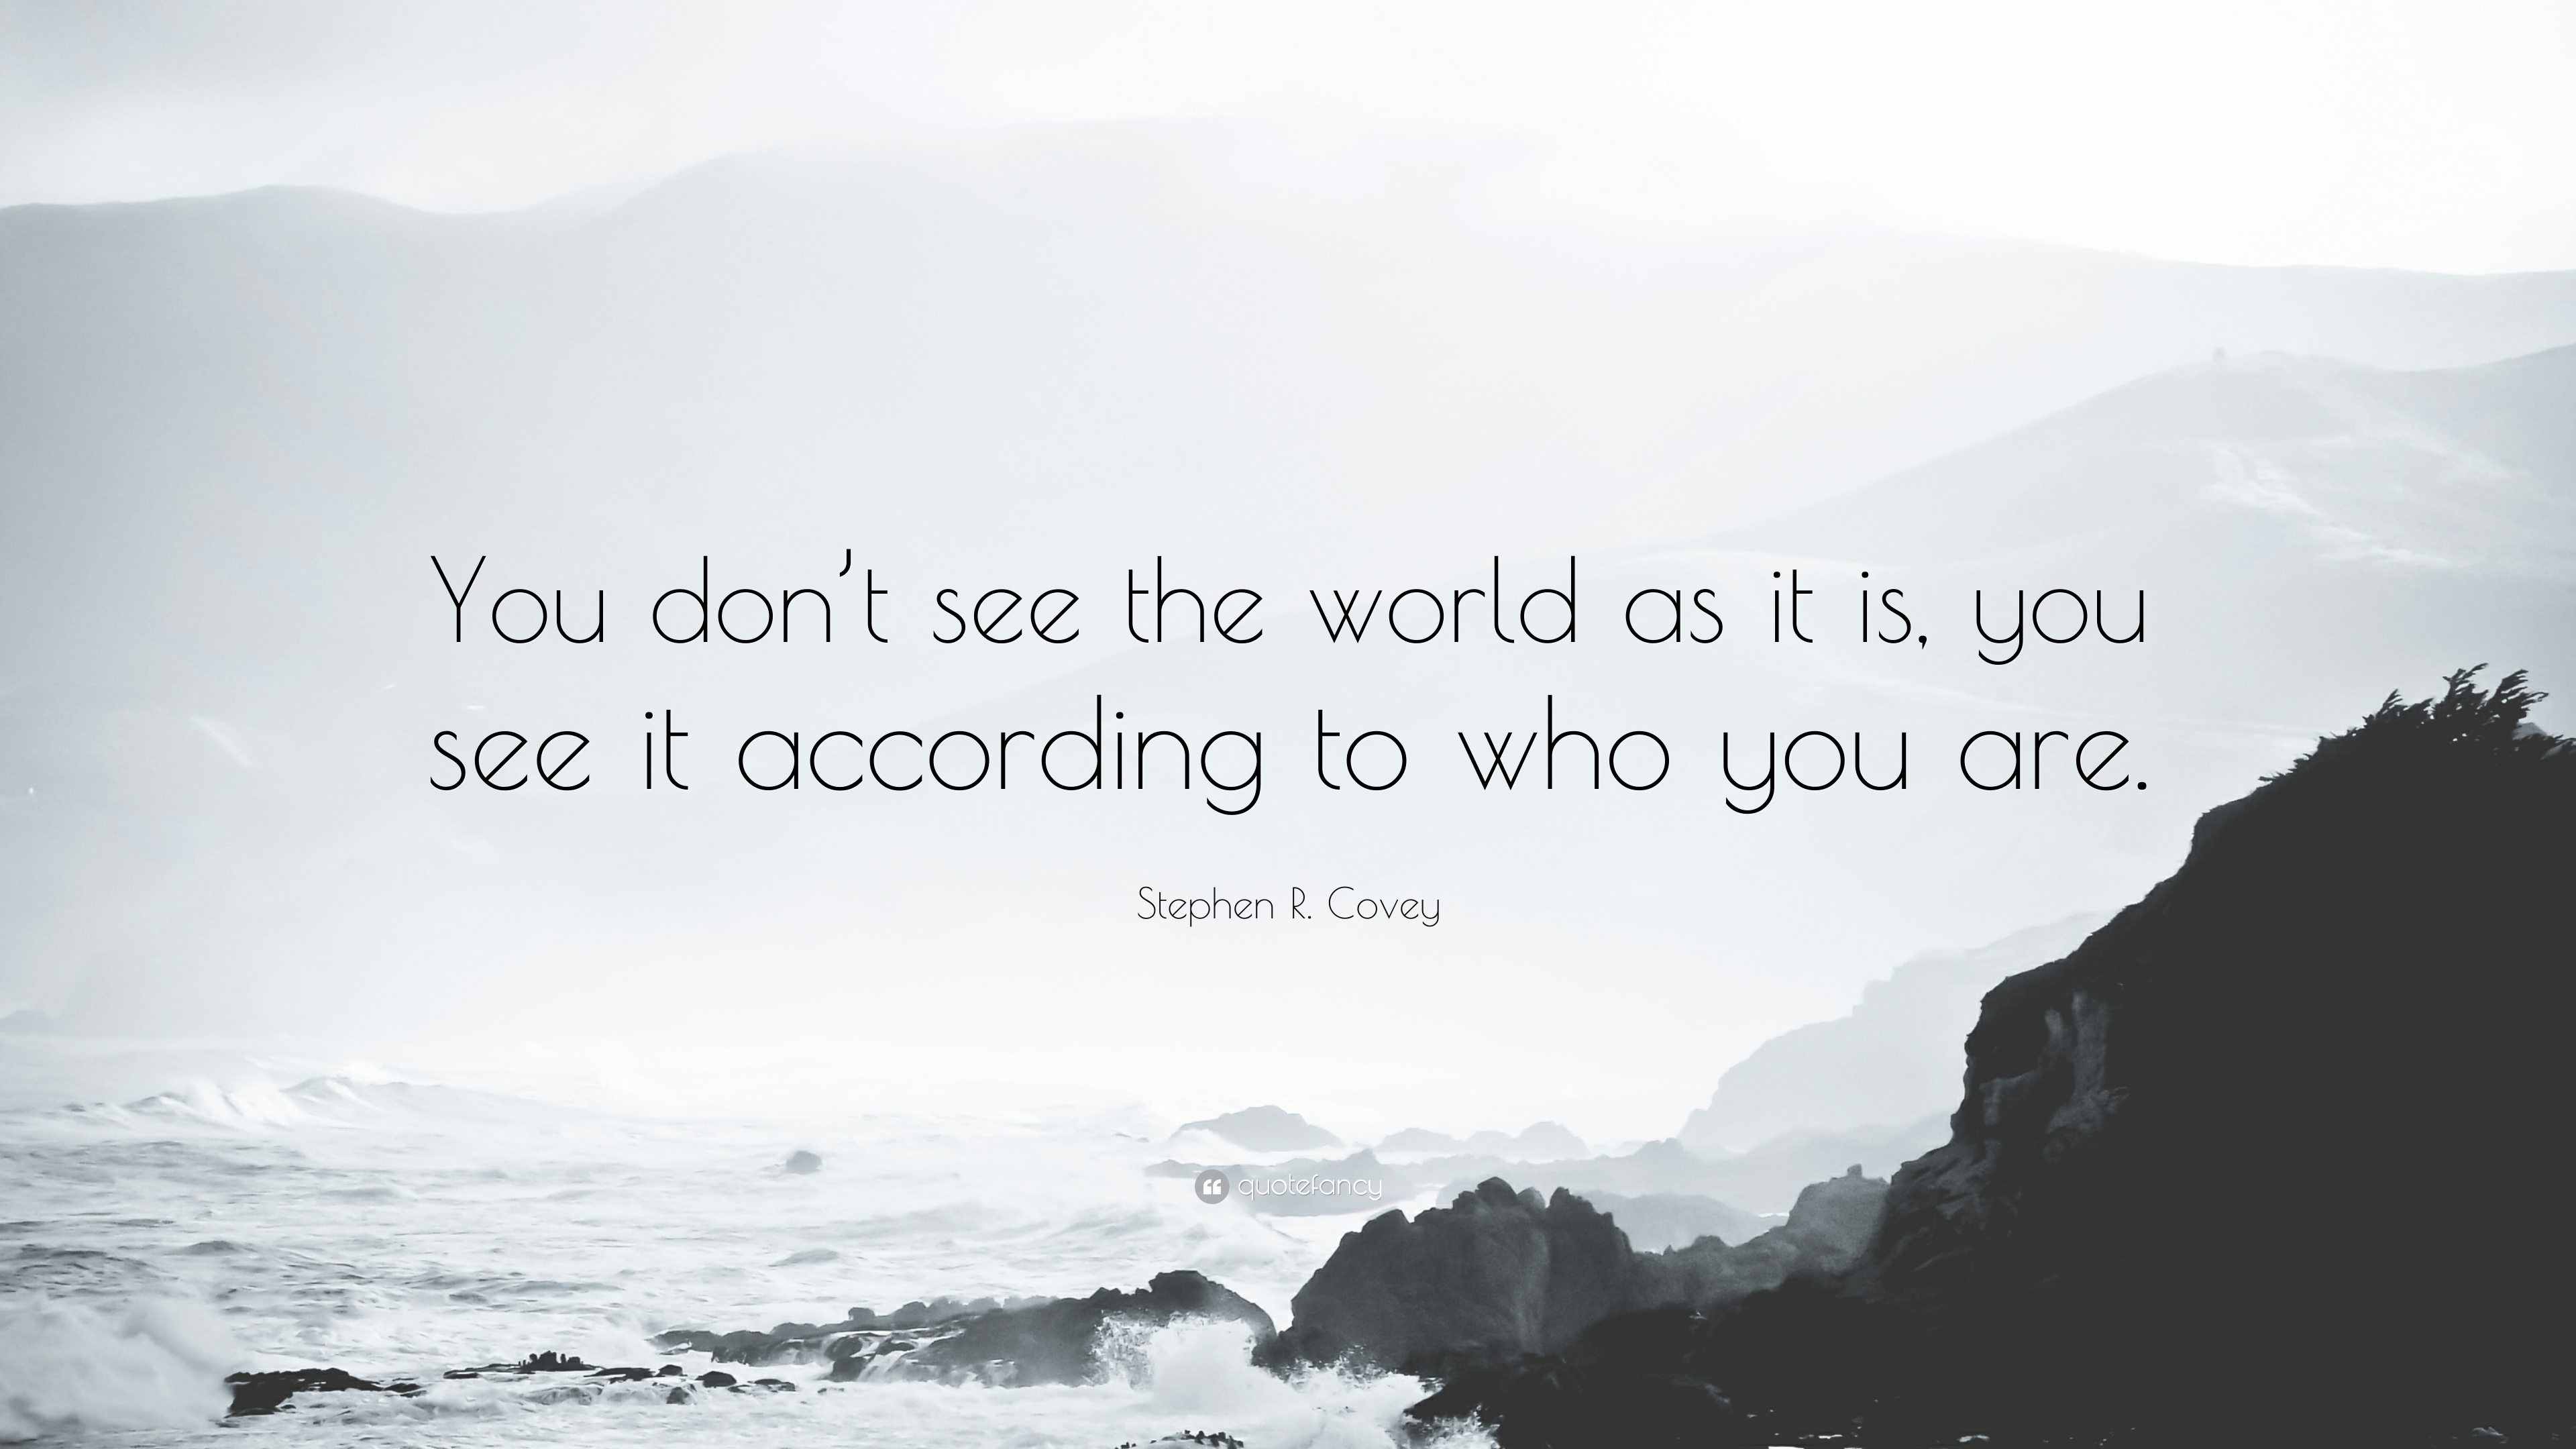 425261-Stephen-R-Covey-Quote-You-don-t-see-the-world-as-it-is-you-see-it.jpg